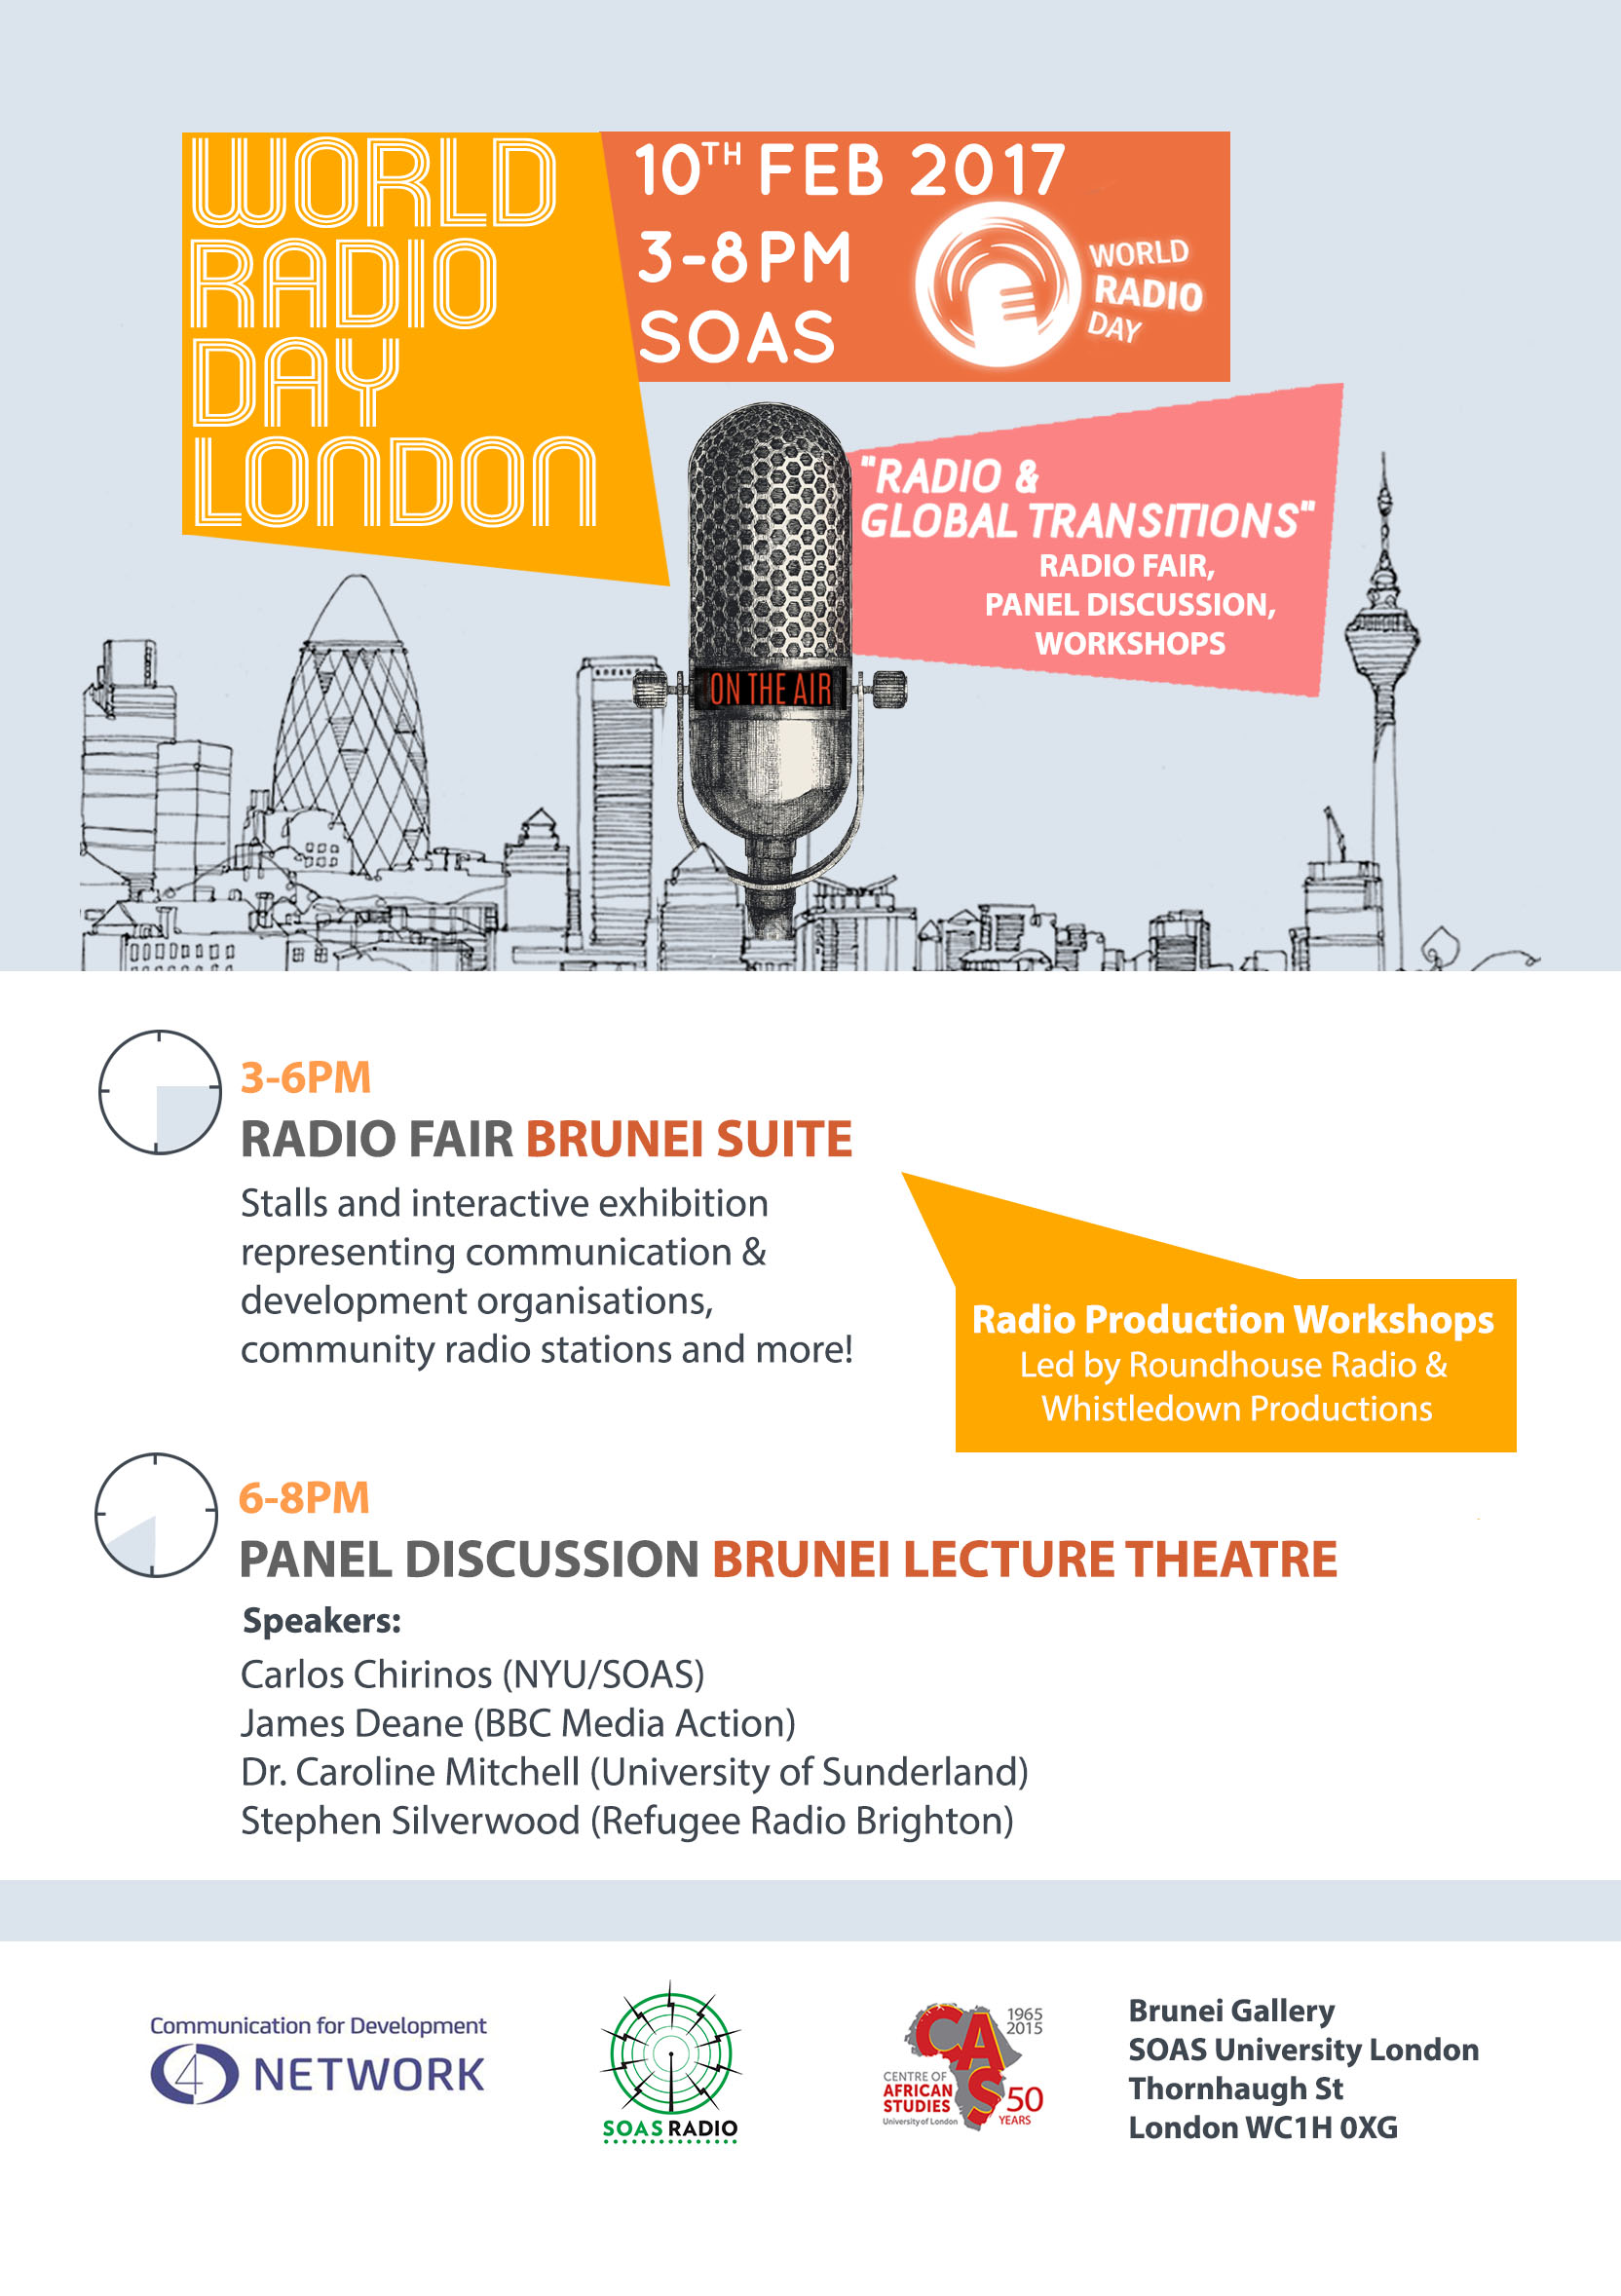 World Radio Day London 2017 Poster